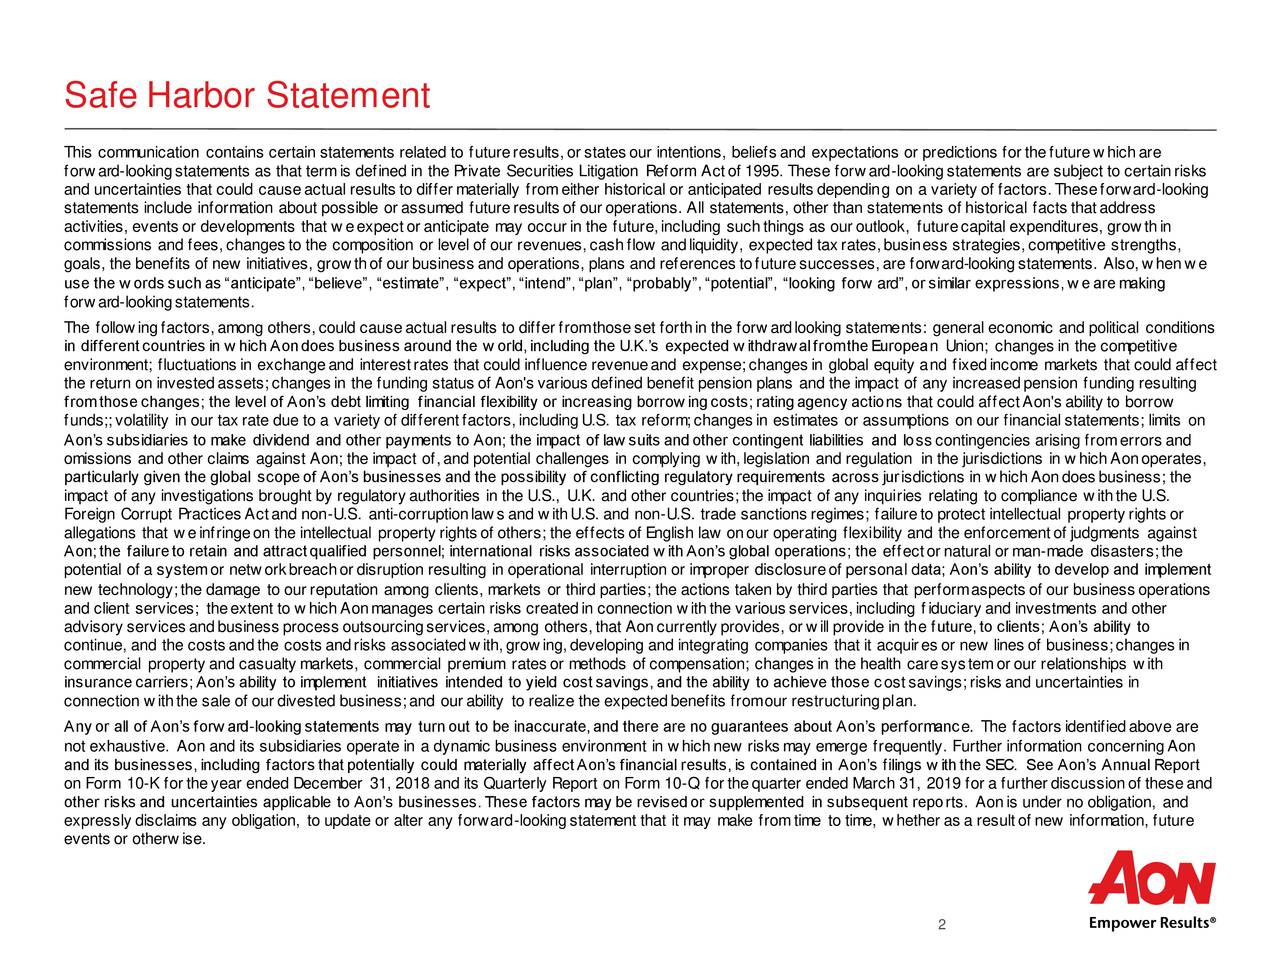 """This communication contains certain statements related to futureresults,or states our intentions, beliefs and expectations or predictions for thefuturew hichare forw ard-lookingstatements as that termis defined in the Private Securities Litigation Reform Actof 1995. These forw ard-lookingstatements are subject to certainrisks and uncertainties that could causeactual results to differ materially fromeither historical or anticipated results depending on a variety of factors.Theseforward-looking statements include information about possible or assumed futureresults of our operations. All statements, other than statements of historical facts thataddress activities, events or developments that w eexpector anticipate may occur in the future,including suchthings as our outlook, futurecapital expenditures, grow thin commissions and fees,changes to the composition or level of our revenues,cashflow andliquidity, expected tax rates,business strategies, competitive strengths, goals, the benefits of new initiatives, grow thof our business and operations, plans and references tofuturesuccesses,are forward-lookingstatements. Also,w henw e use the w ords suchas """"anticipate"""",""""believe"""", """"estimate"""", """"expect"""",""""intend"""",""""plan"""", """"probably"""",""""potential"""", """"looking forw ard"""",or similar expressions,w earemaking forw ard-lookingstatements. The follow ingfactors,among others,could causeactual results to differ fromthoseset forthin the forw ardlooking statements: general economic and political conditions in differentcountries in w hichAondoes business around the w orld,including the U.K.'s expected w ithdrawalfromtheEuropean Union; changes in the competitive environment; fluctuations in exchangeand interestrates that could influence revenueand expense;changes in global equity and fixedincome markets that could affect the return on investedassets;changes in the funding status of Aon's various defined benefit pension plans and the impact of any increasedpension funding resulting fromthosechanges; t"""